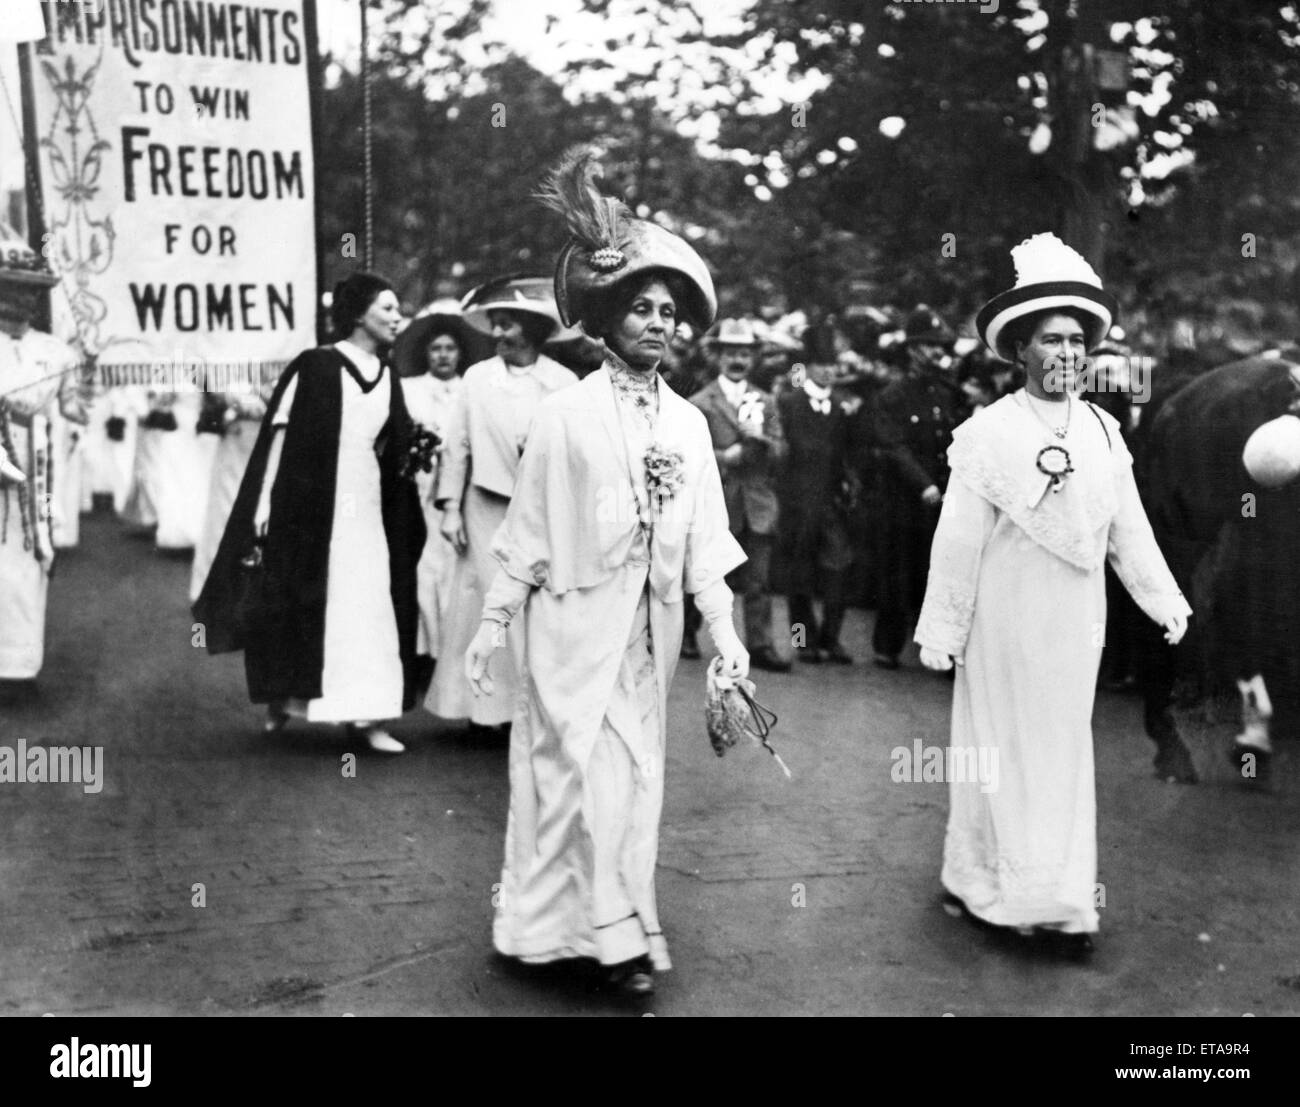 Lady Pethick-Lawrence (right) and Mrs Pankhurst lead a Suffragette demonstration, Christabel Pankhurst (in black & white) follows behind her mother. Circa 1910. Stock Photo